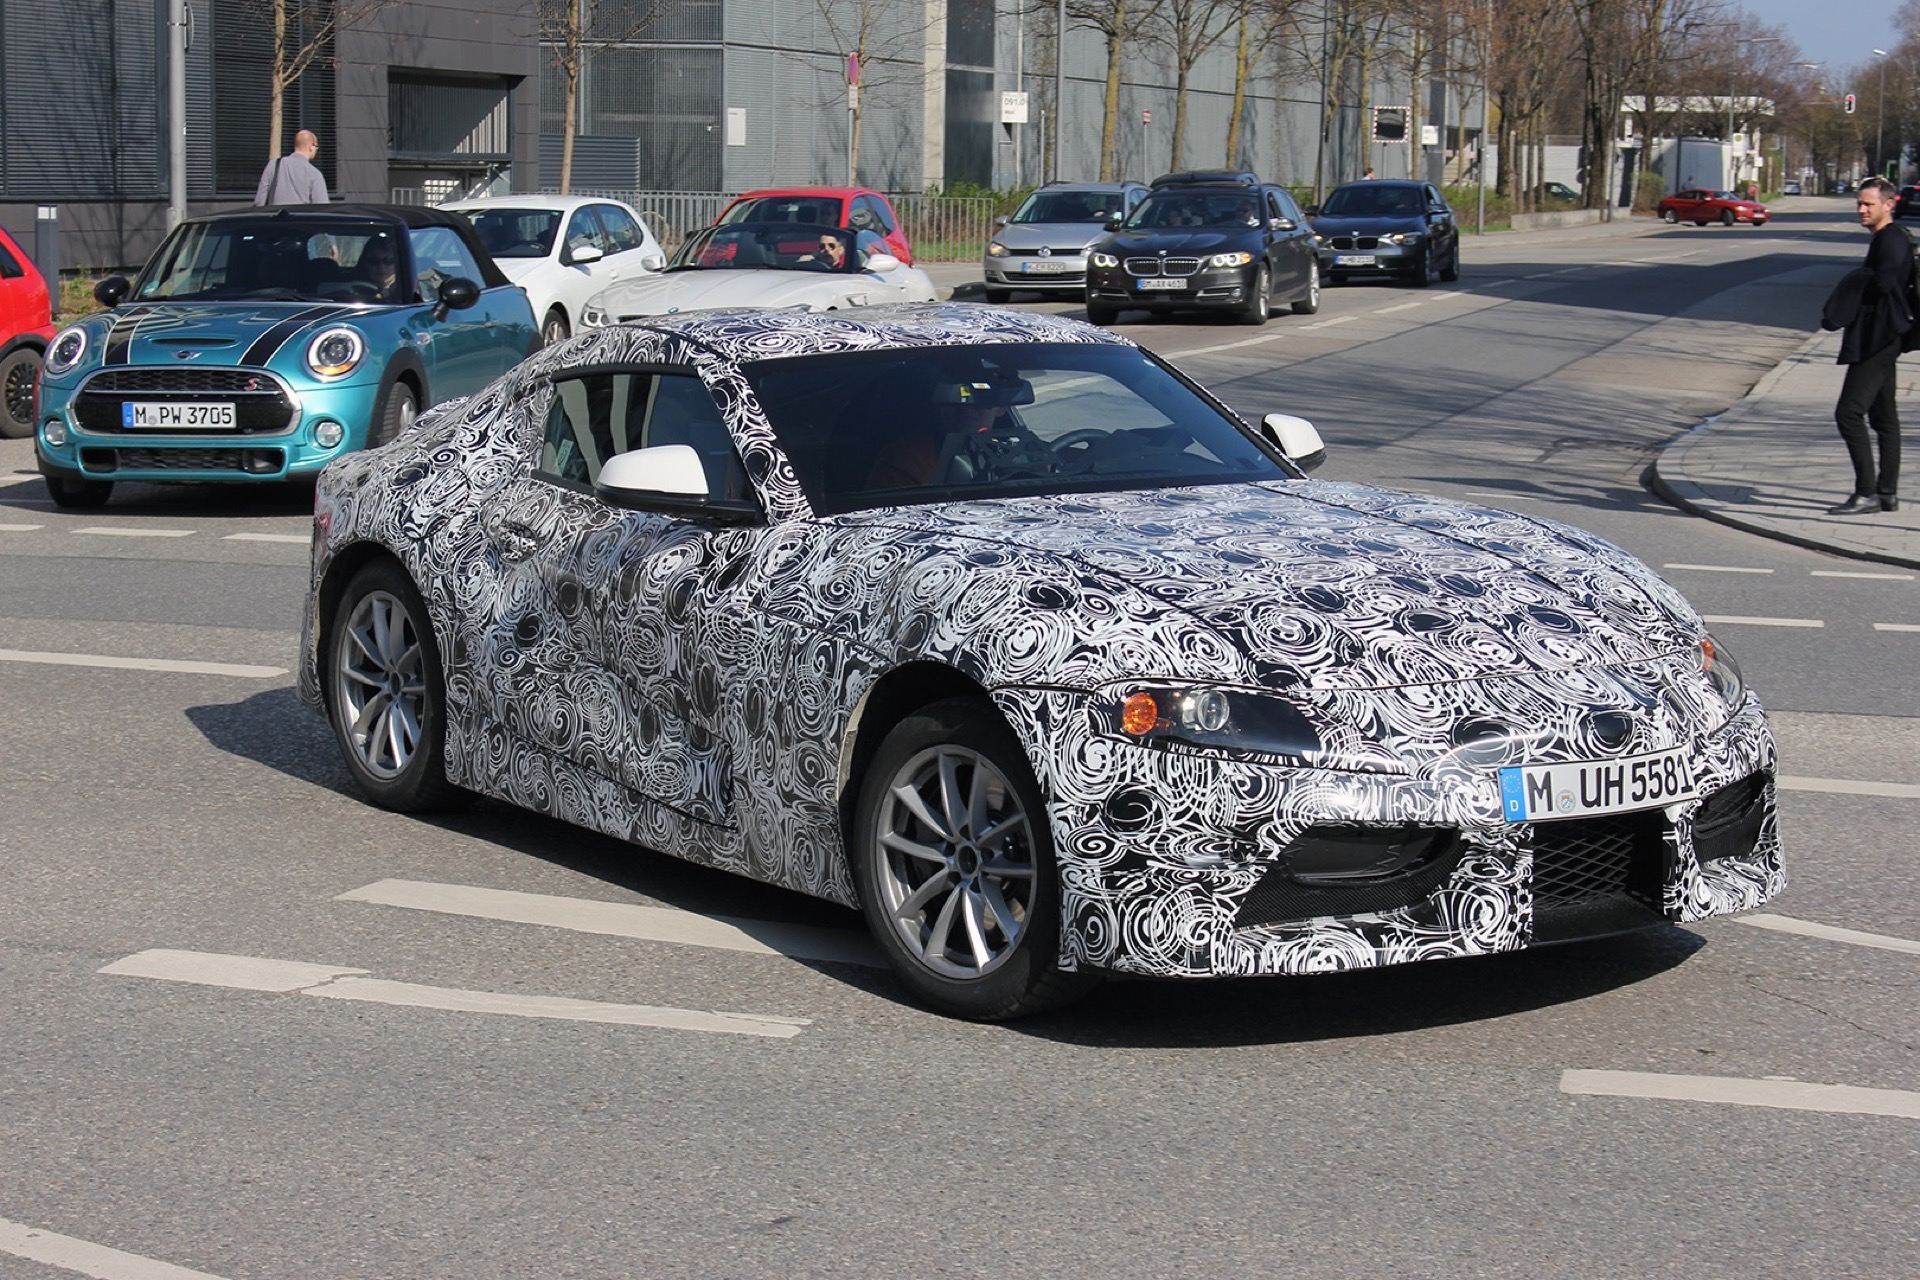 Next Gen Bmw Z4 Spotted Testing In Munich Along With Supra